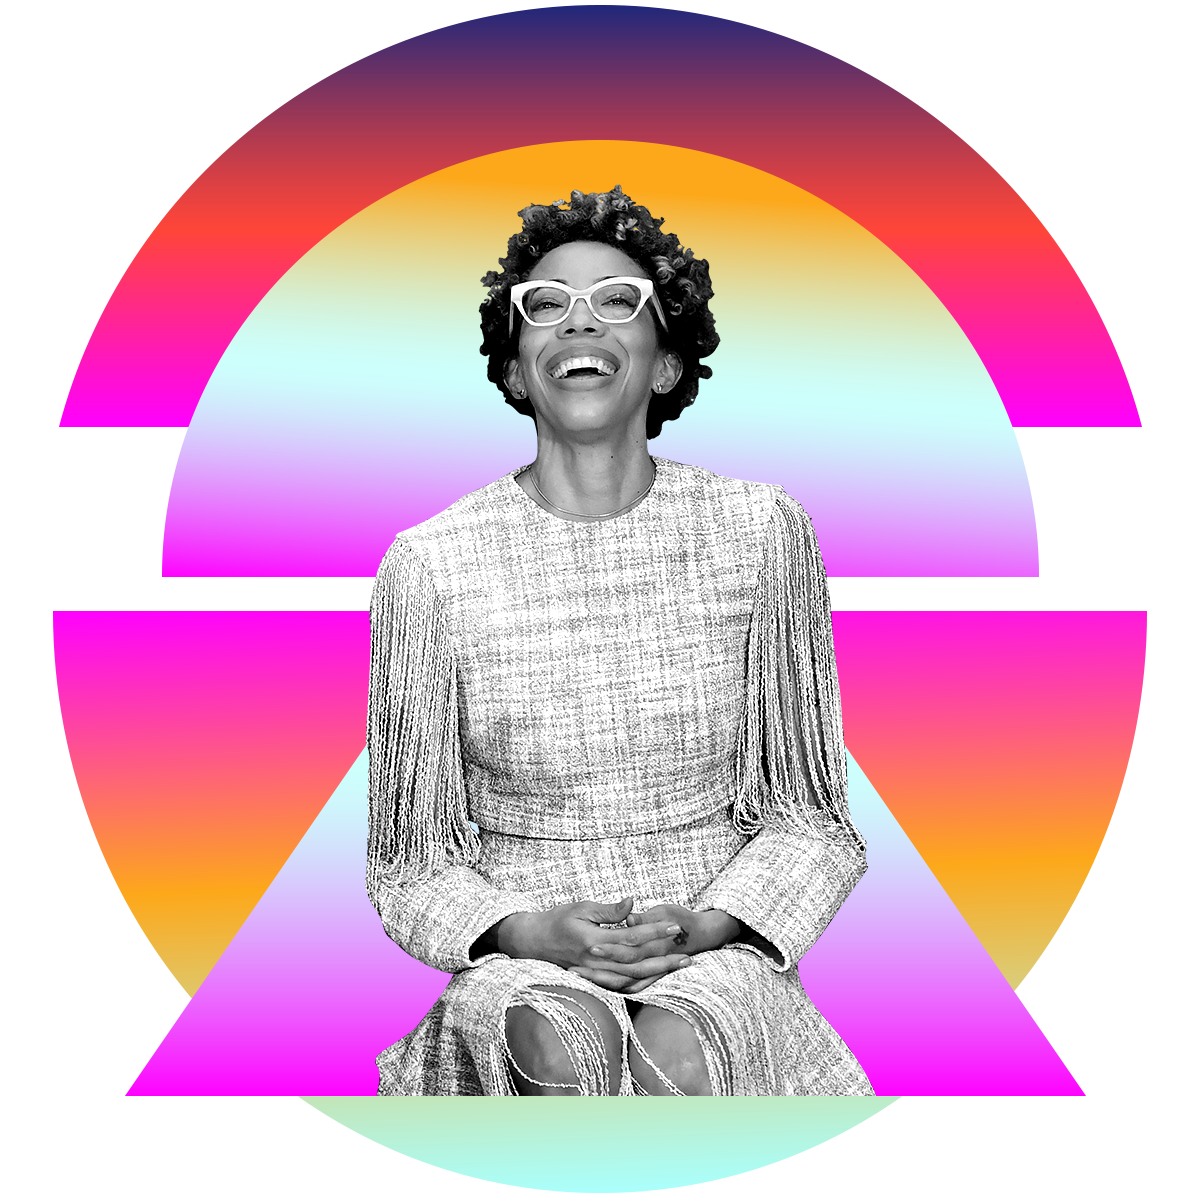 Photo illustration of Amy Sherald in black and white surrounded by colored gradients